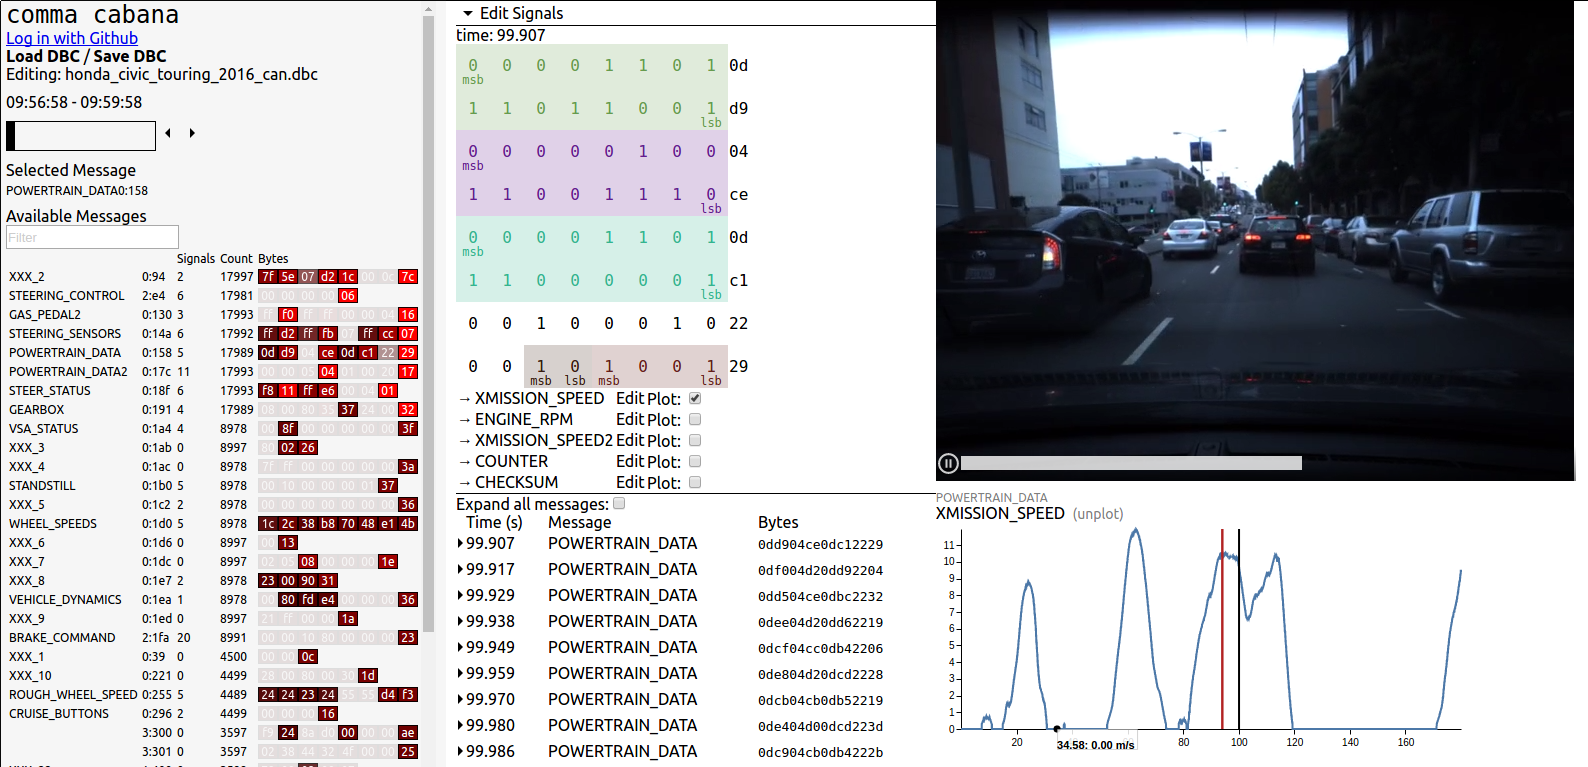 A Panda And Cabana How To Get Started Car Hacking With Commaai Citroen Xsara Central Locking Wiring Diagram On The Left Youll Find All Signals From Your In Middle Signal You Are Currently Editing Right Driving Video Graphs